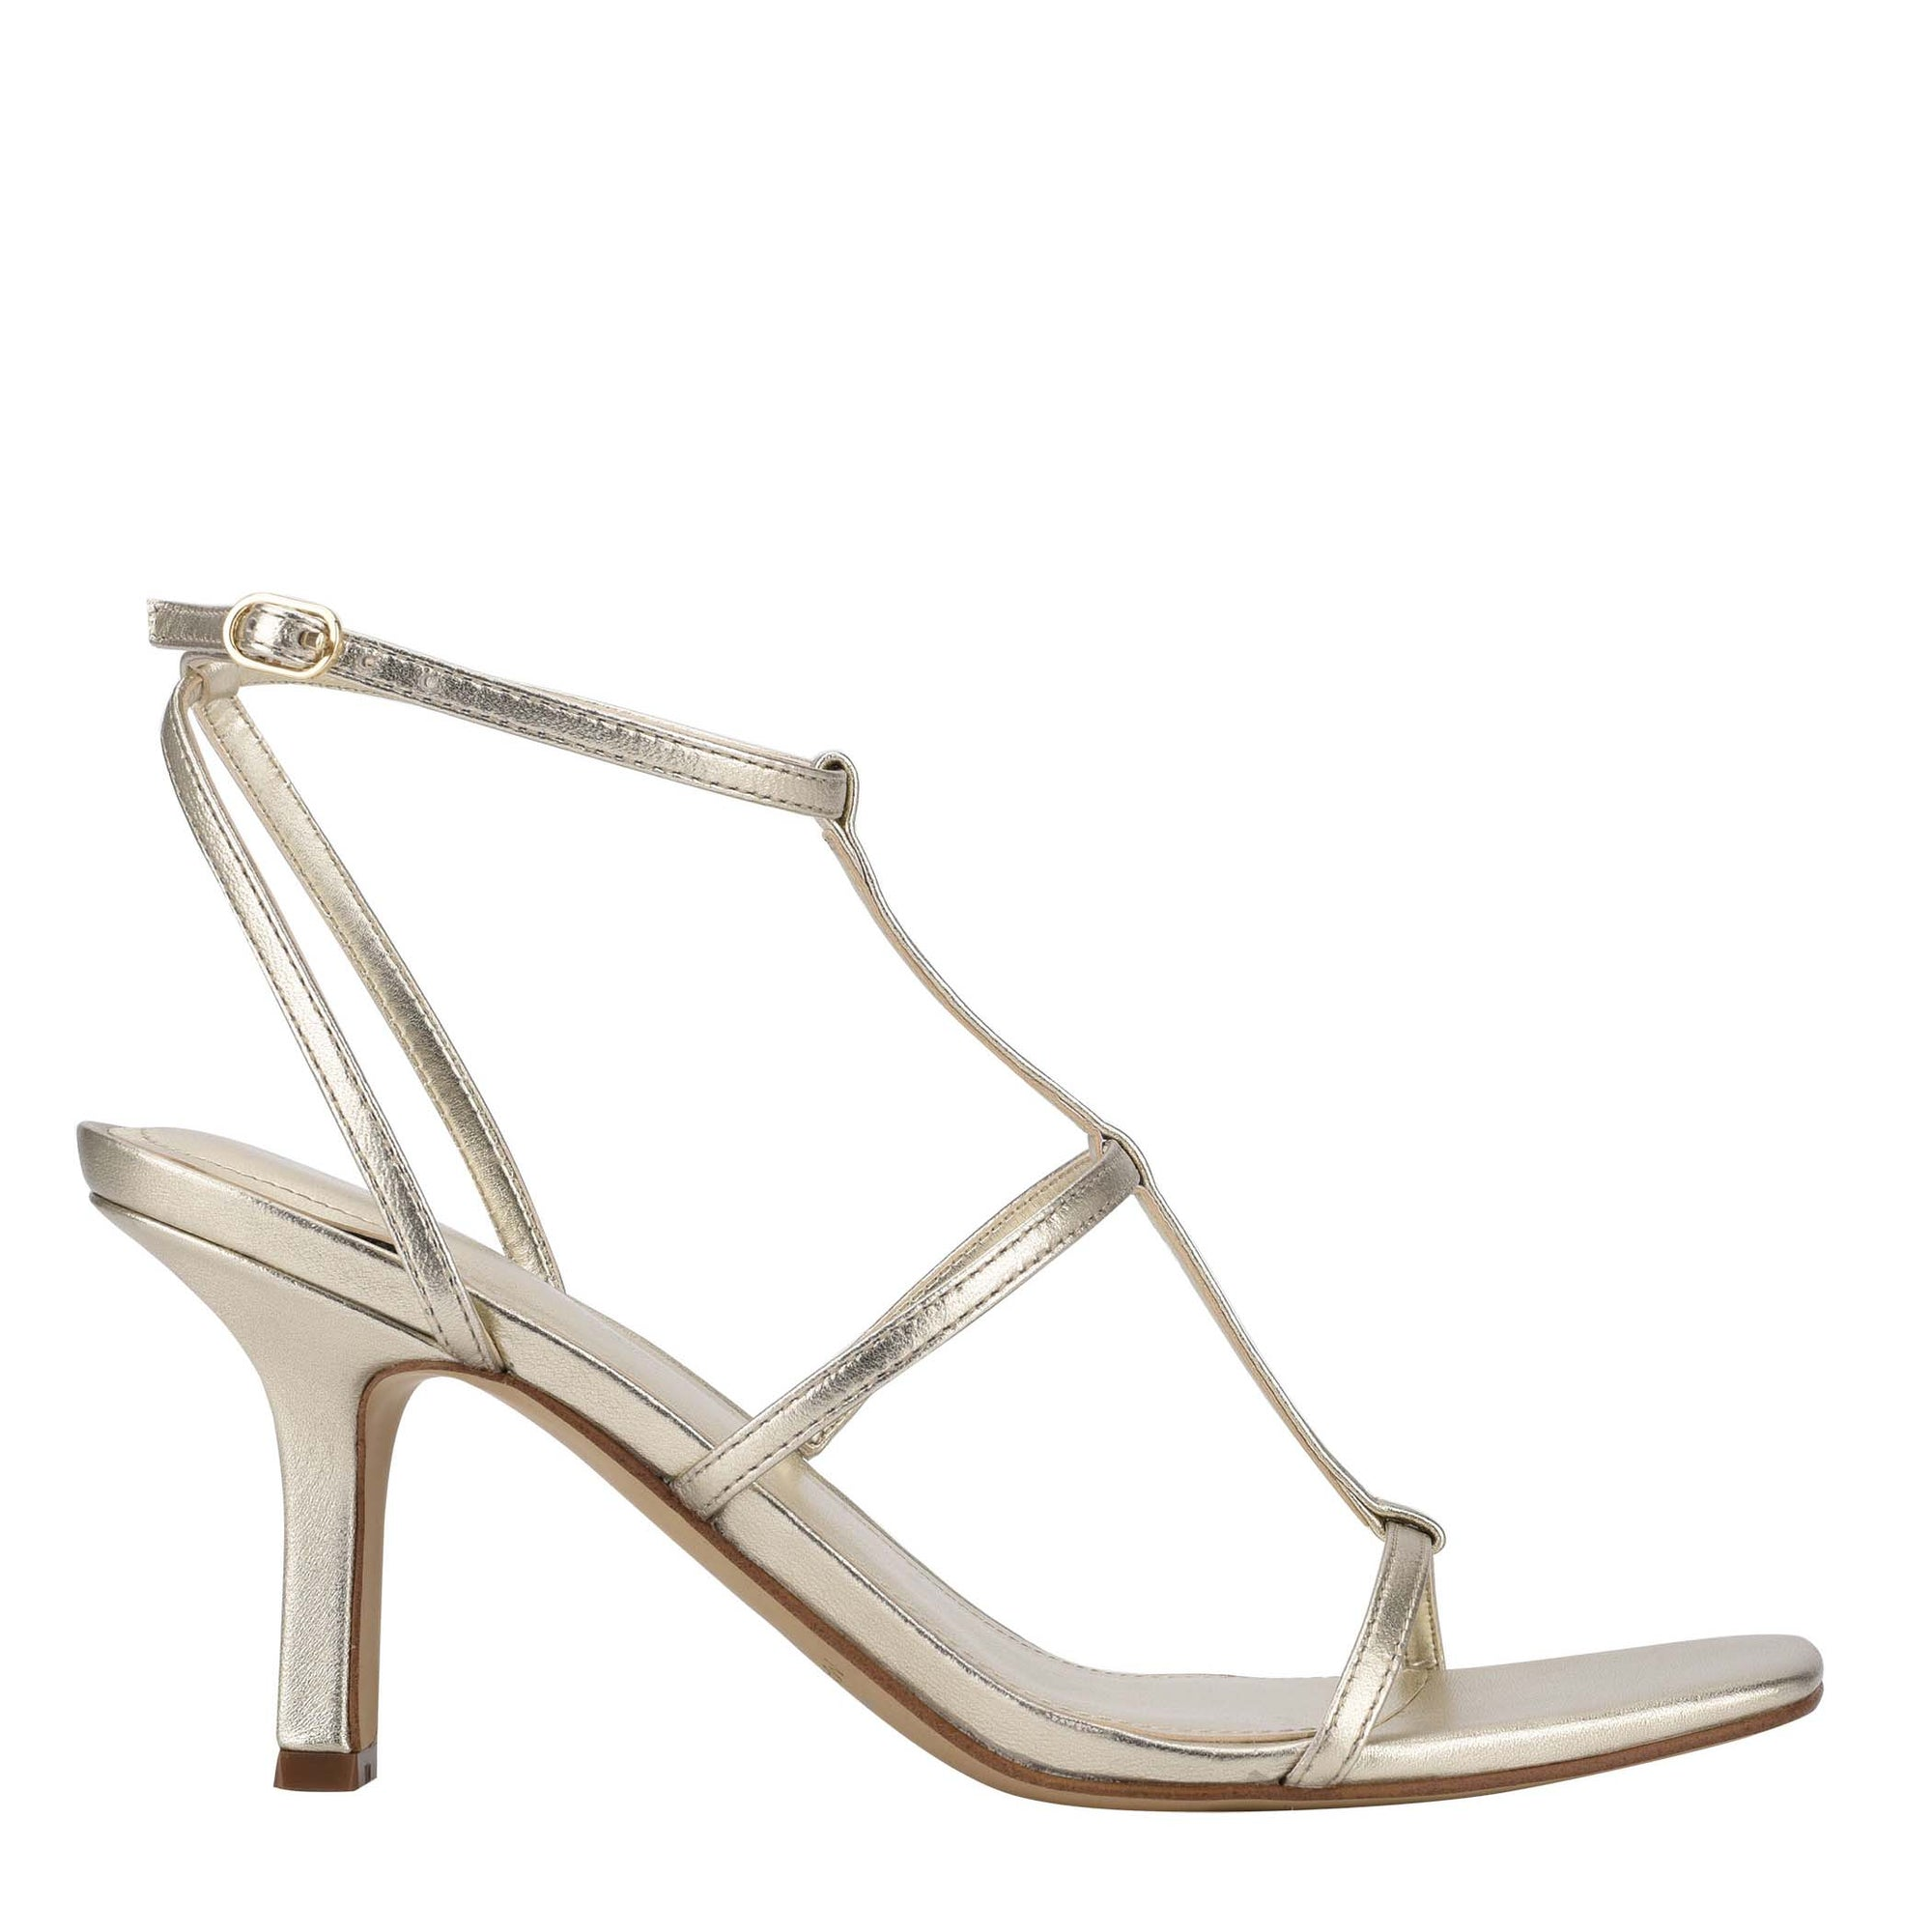 qulsa-heeled-sandal-in-gold-leather